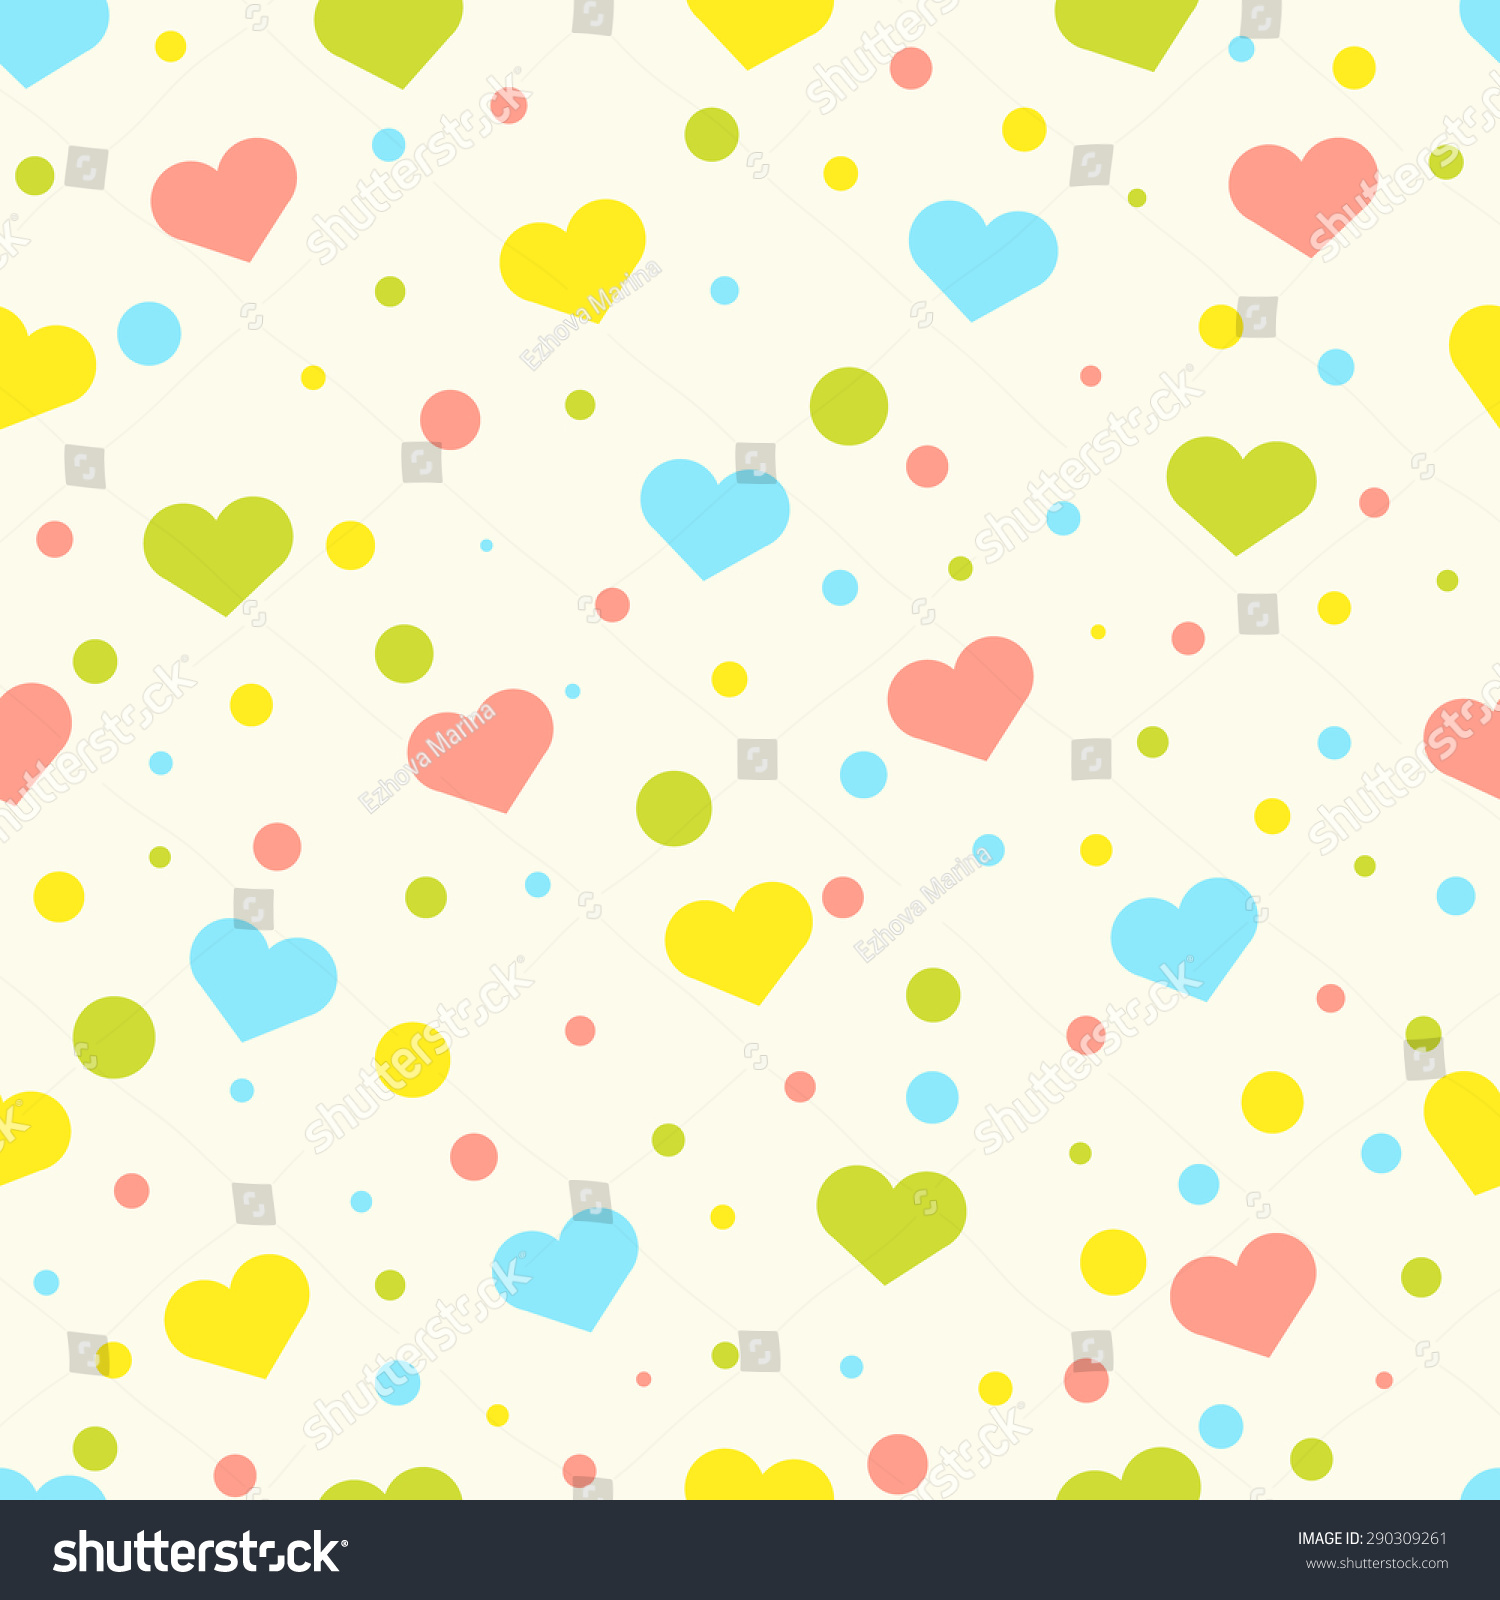 Scrapbook paper baby - Baby Background With Colorful Hearts And Circles Paper For Scrapbook Or Background